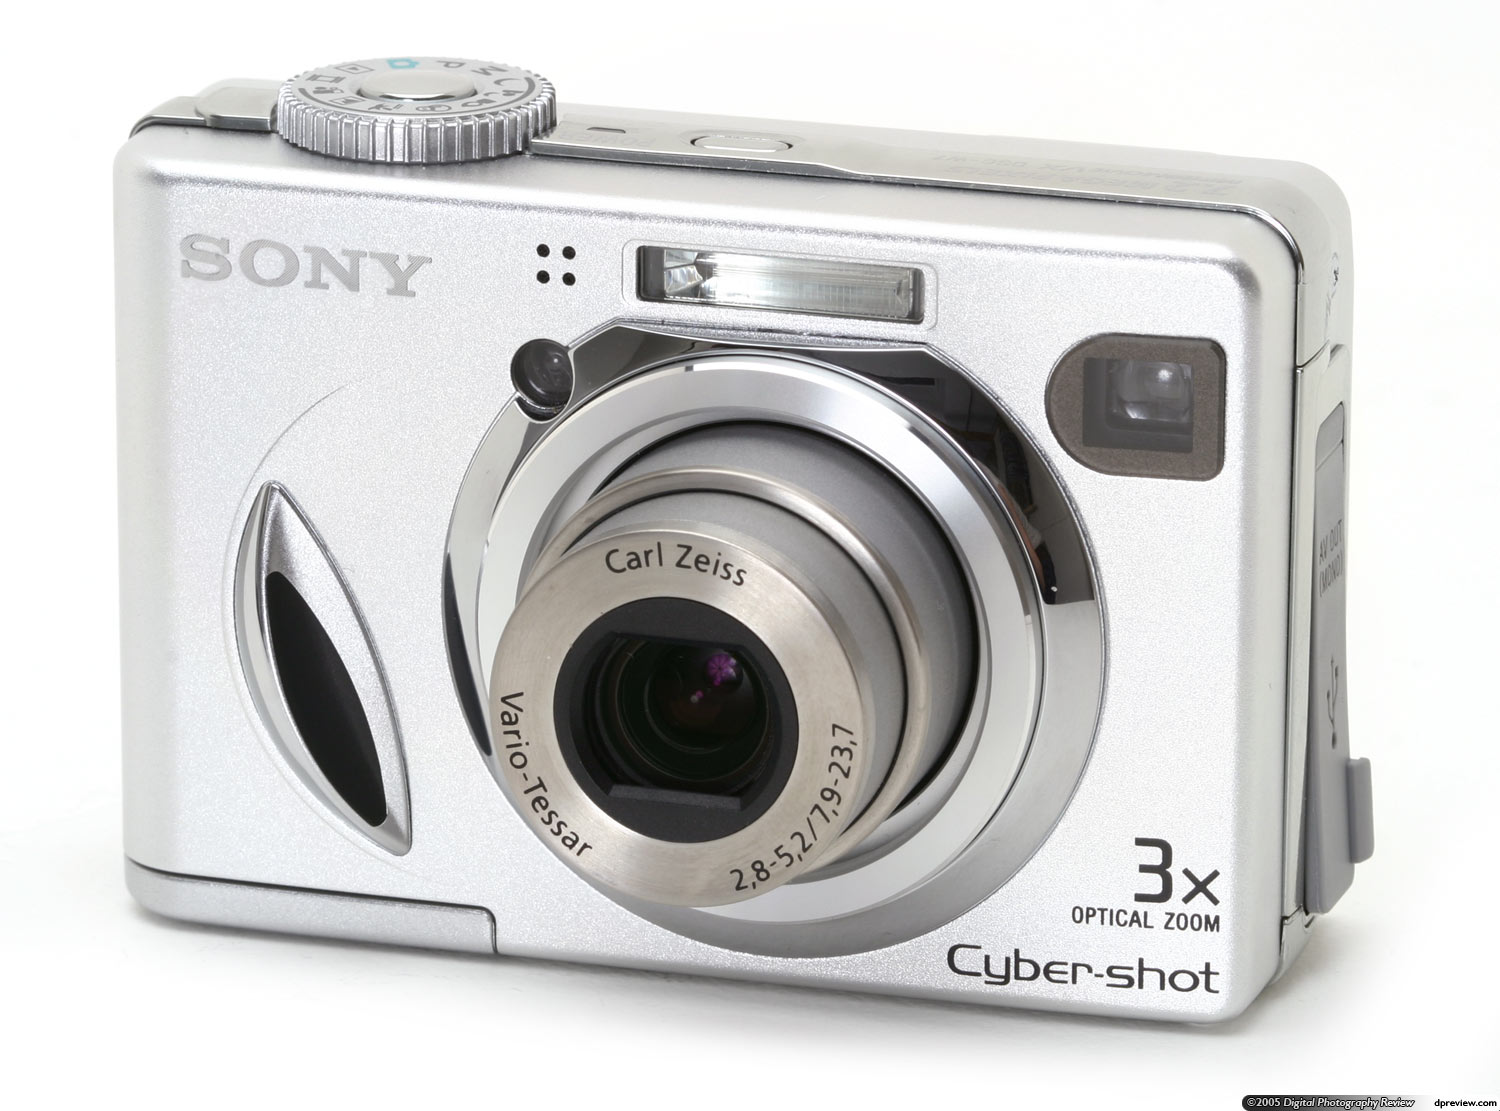 sony cyber shot w7 review digital photography review rh dpreview com Sony Cyber-shot Camera Manual sony cyber-shot dsc-w5 manual pdf